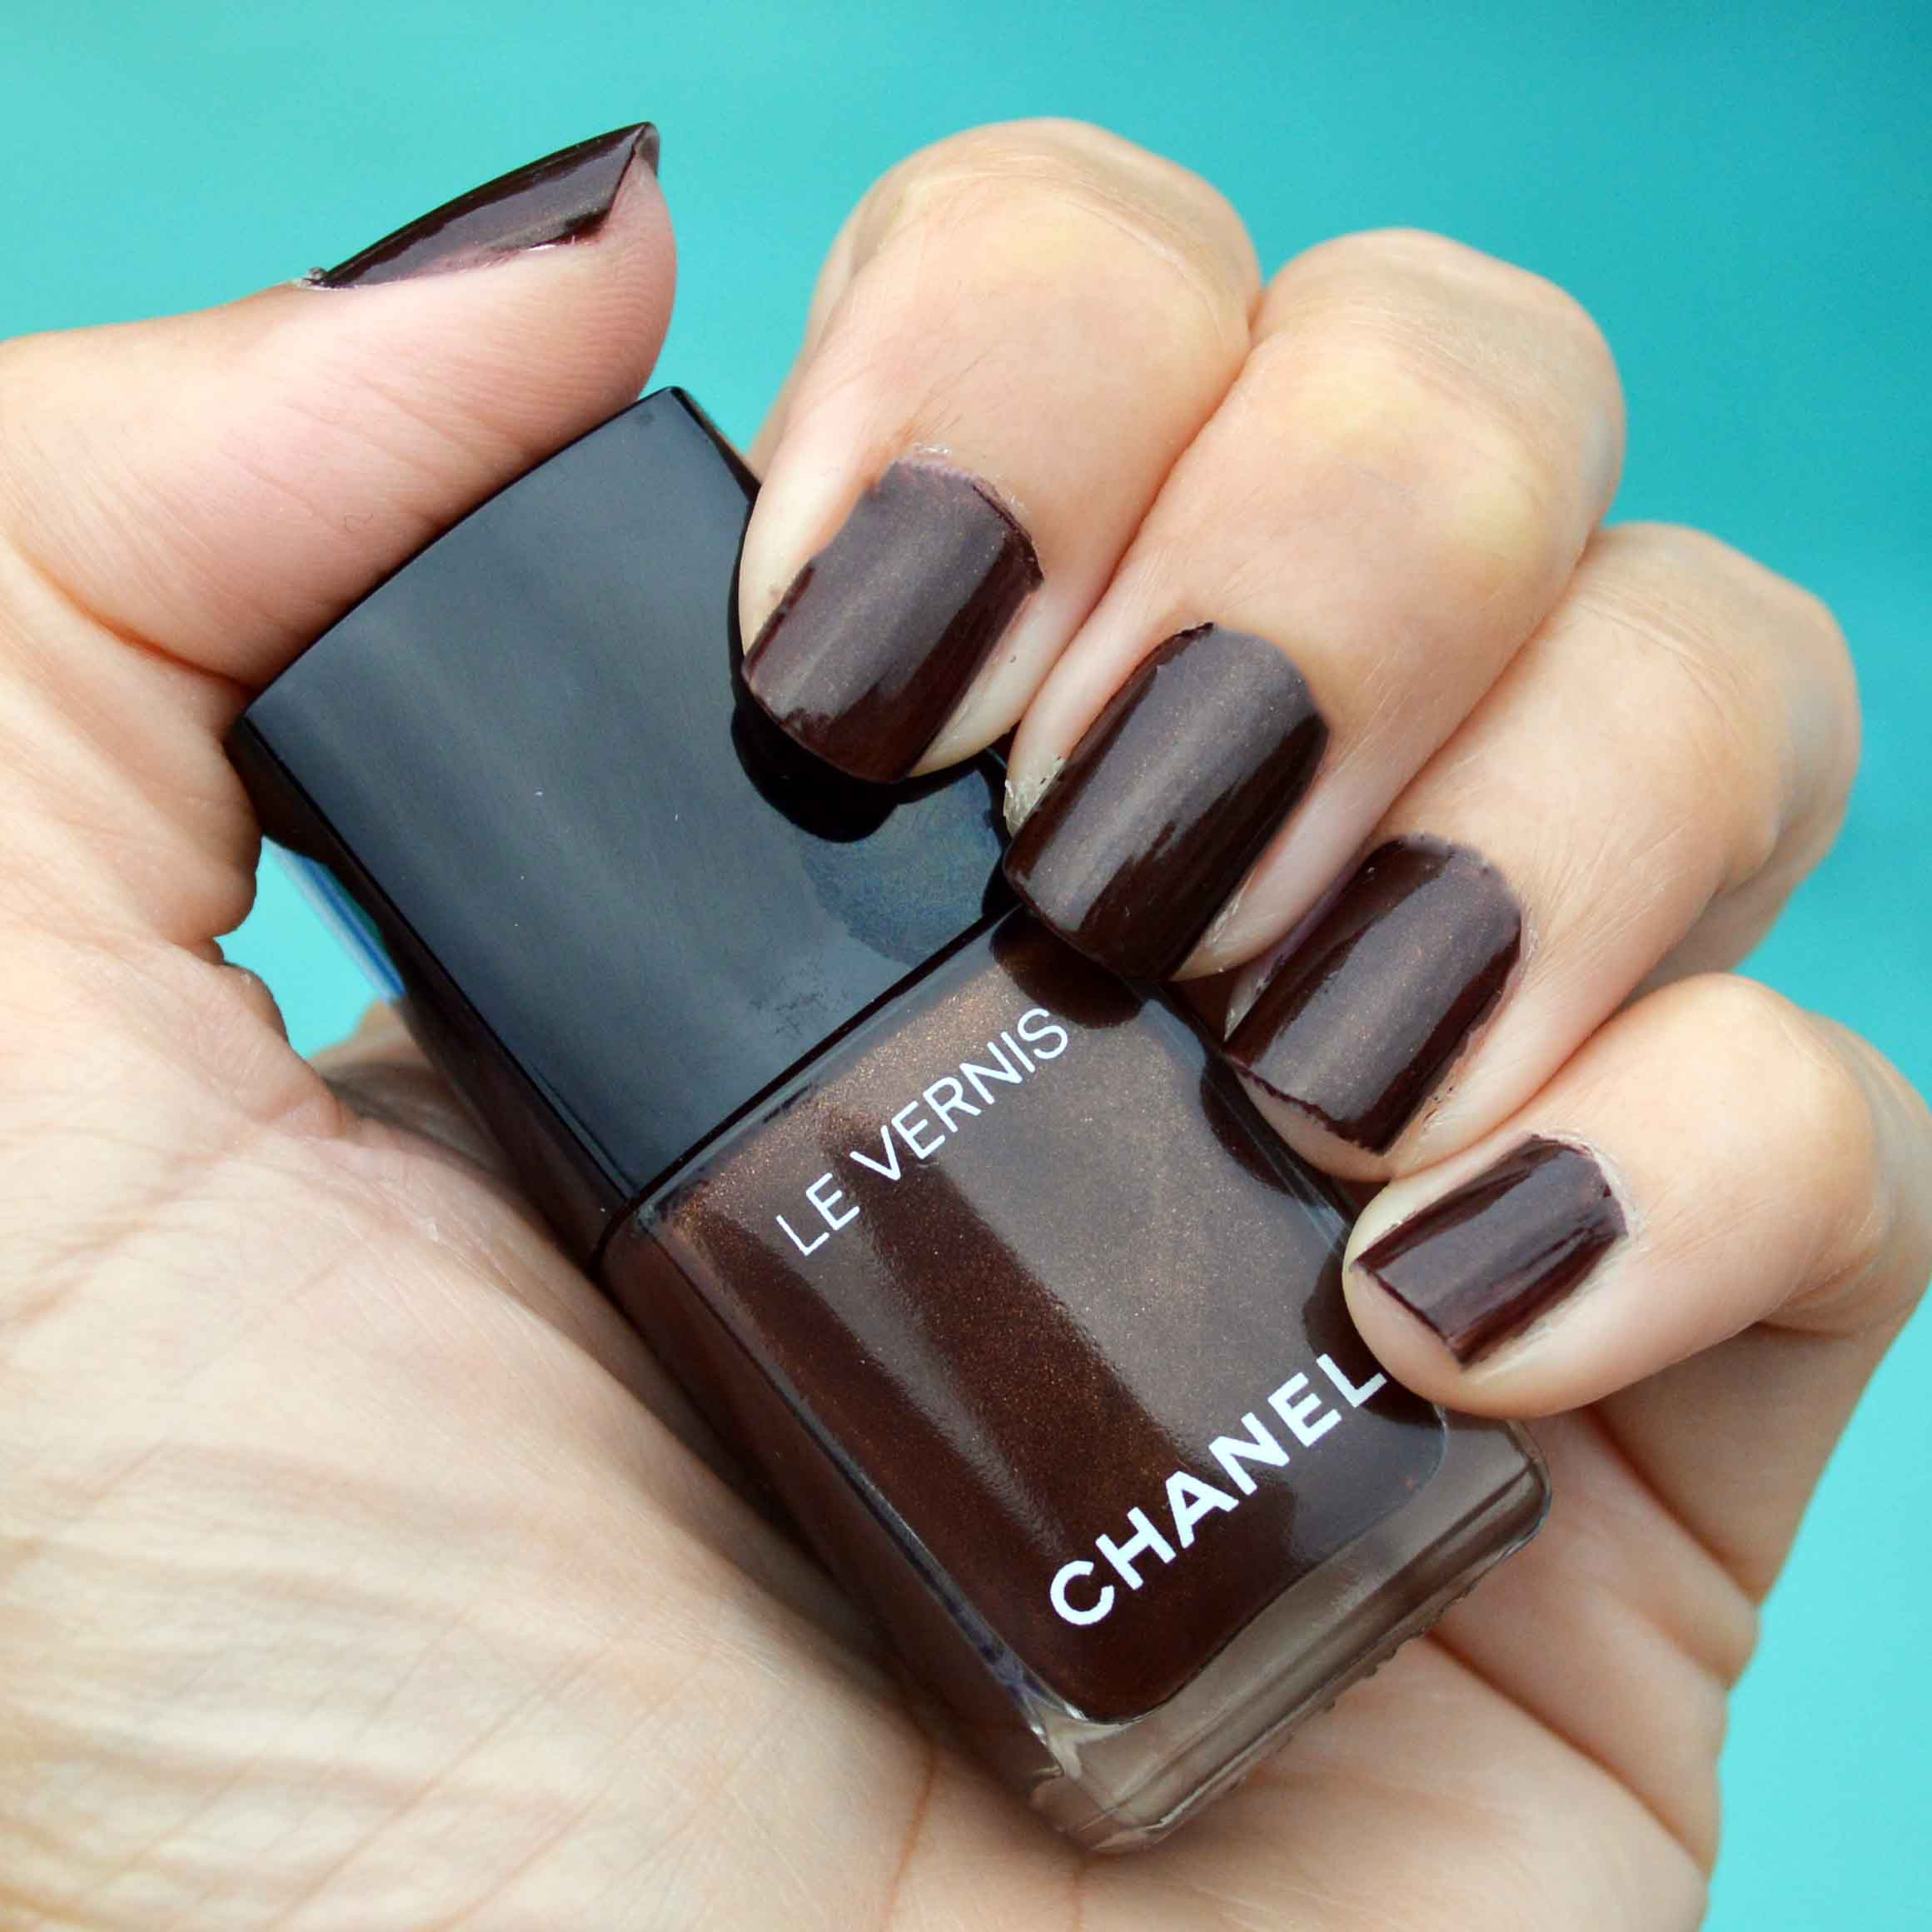 Chanel Cavaliere nail polish summer 2016 – Bay Area Fashionista